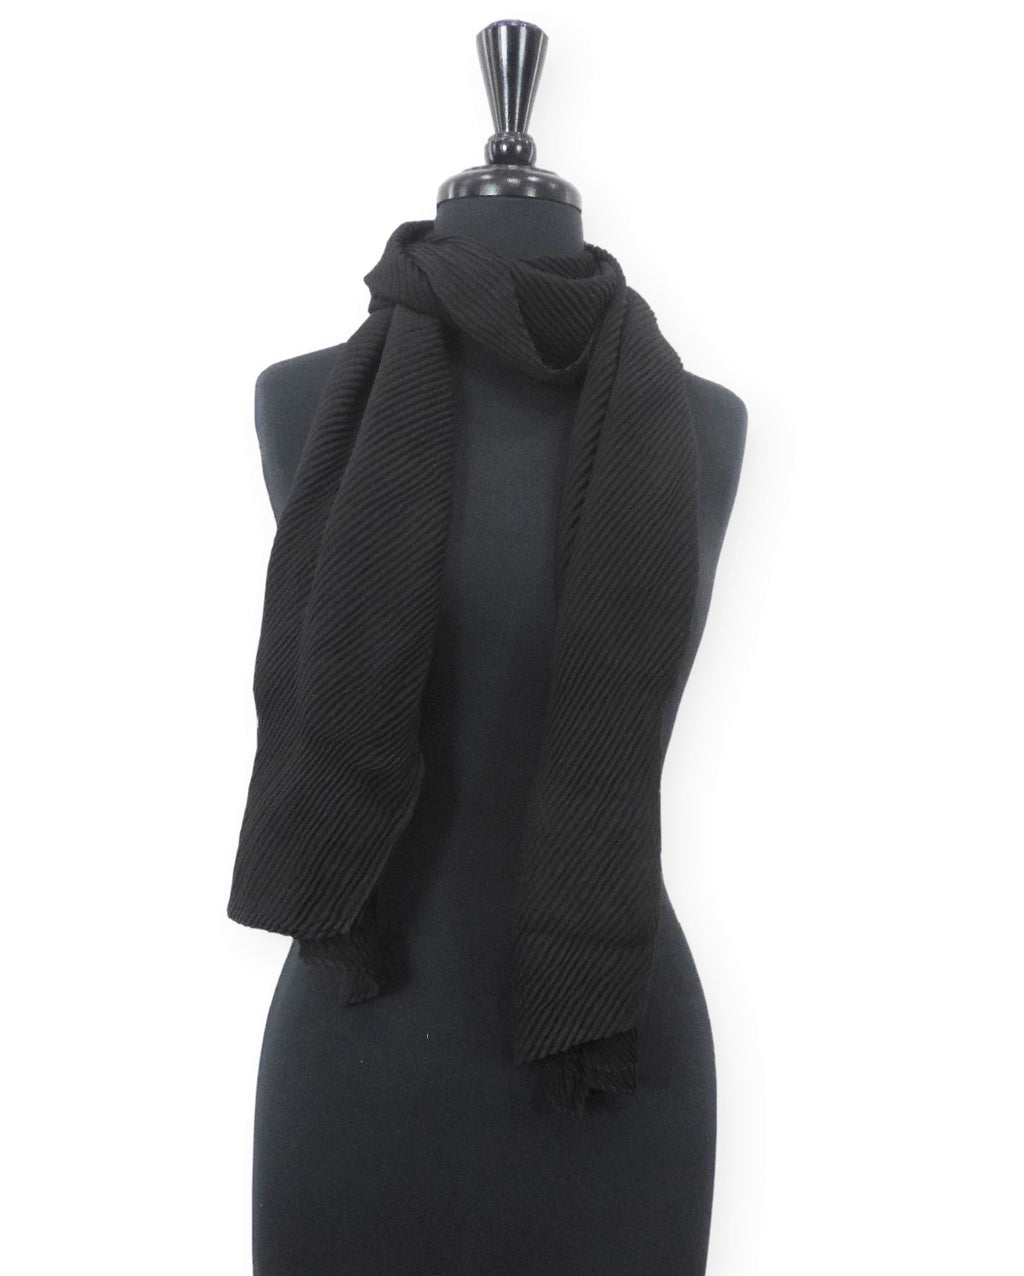 Jet Black Cotton Wrinkle Scarf - Global Trendz Fashion®